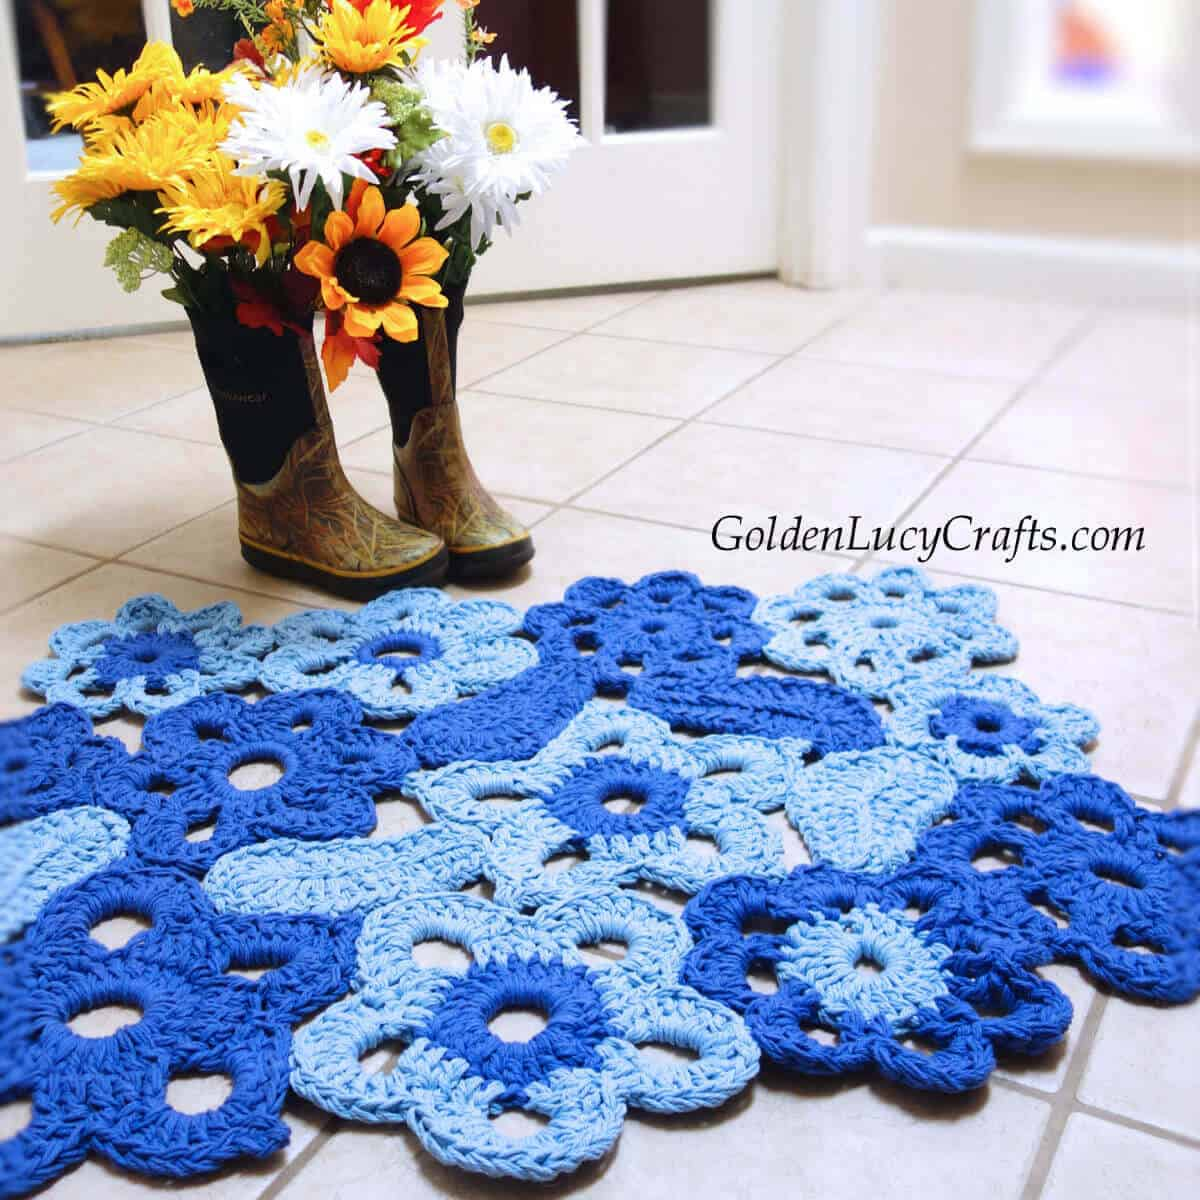 Crocheted flower rug on the floor, rainboots with flowers next to the rug.